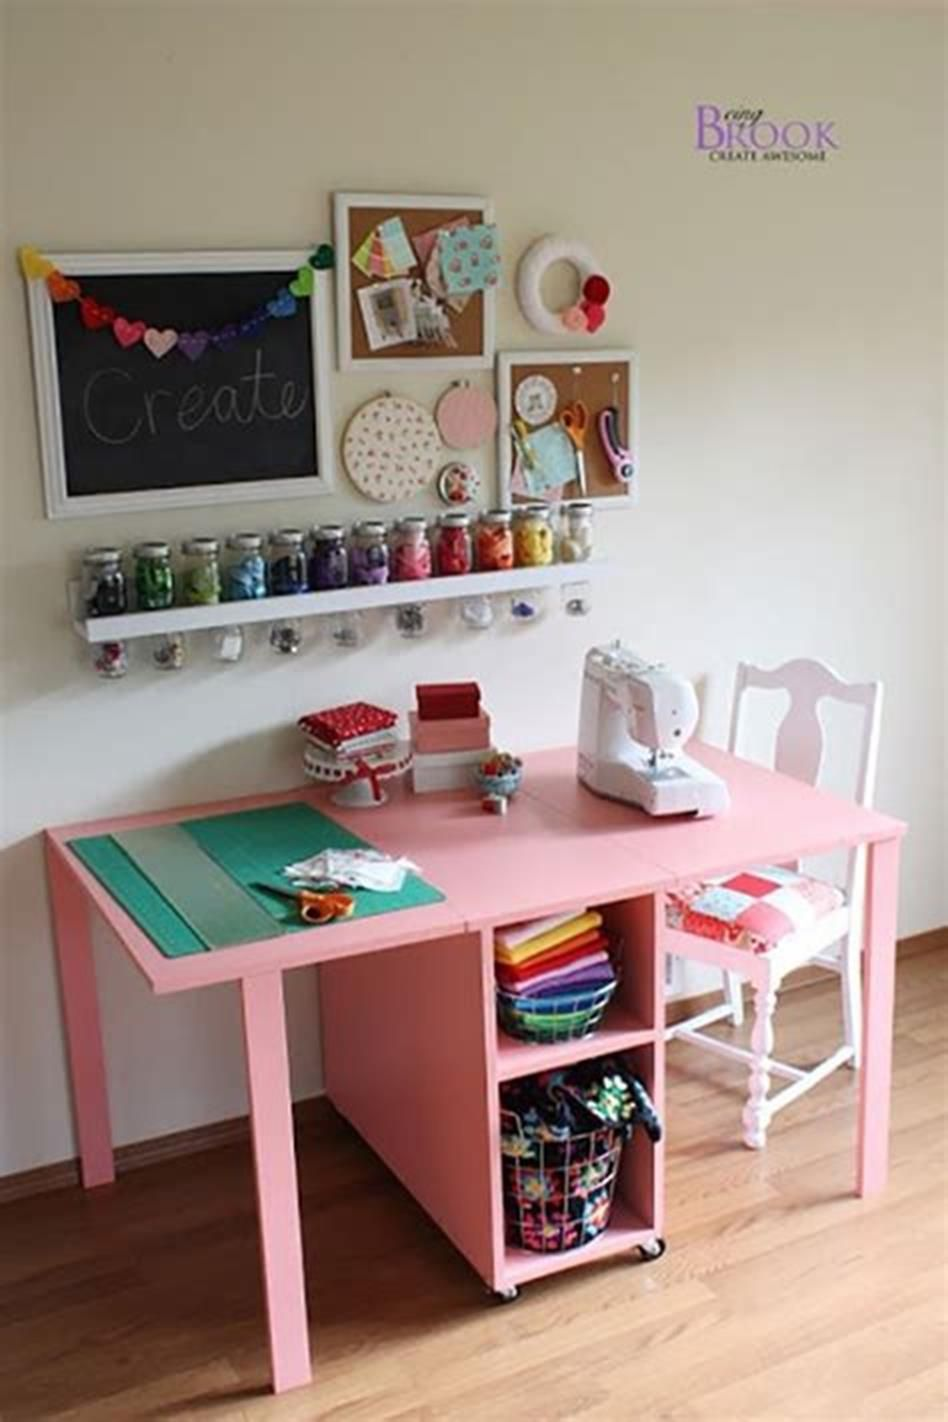 Kids Room Designs For Small Spaces: 40+ Best Small Craft Room And Sewing Room Design Ideas On